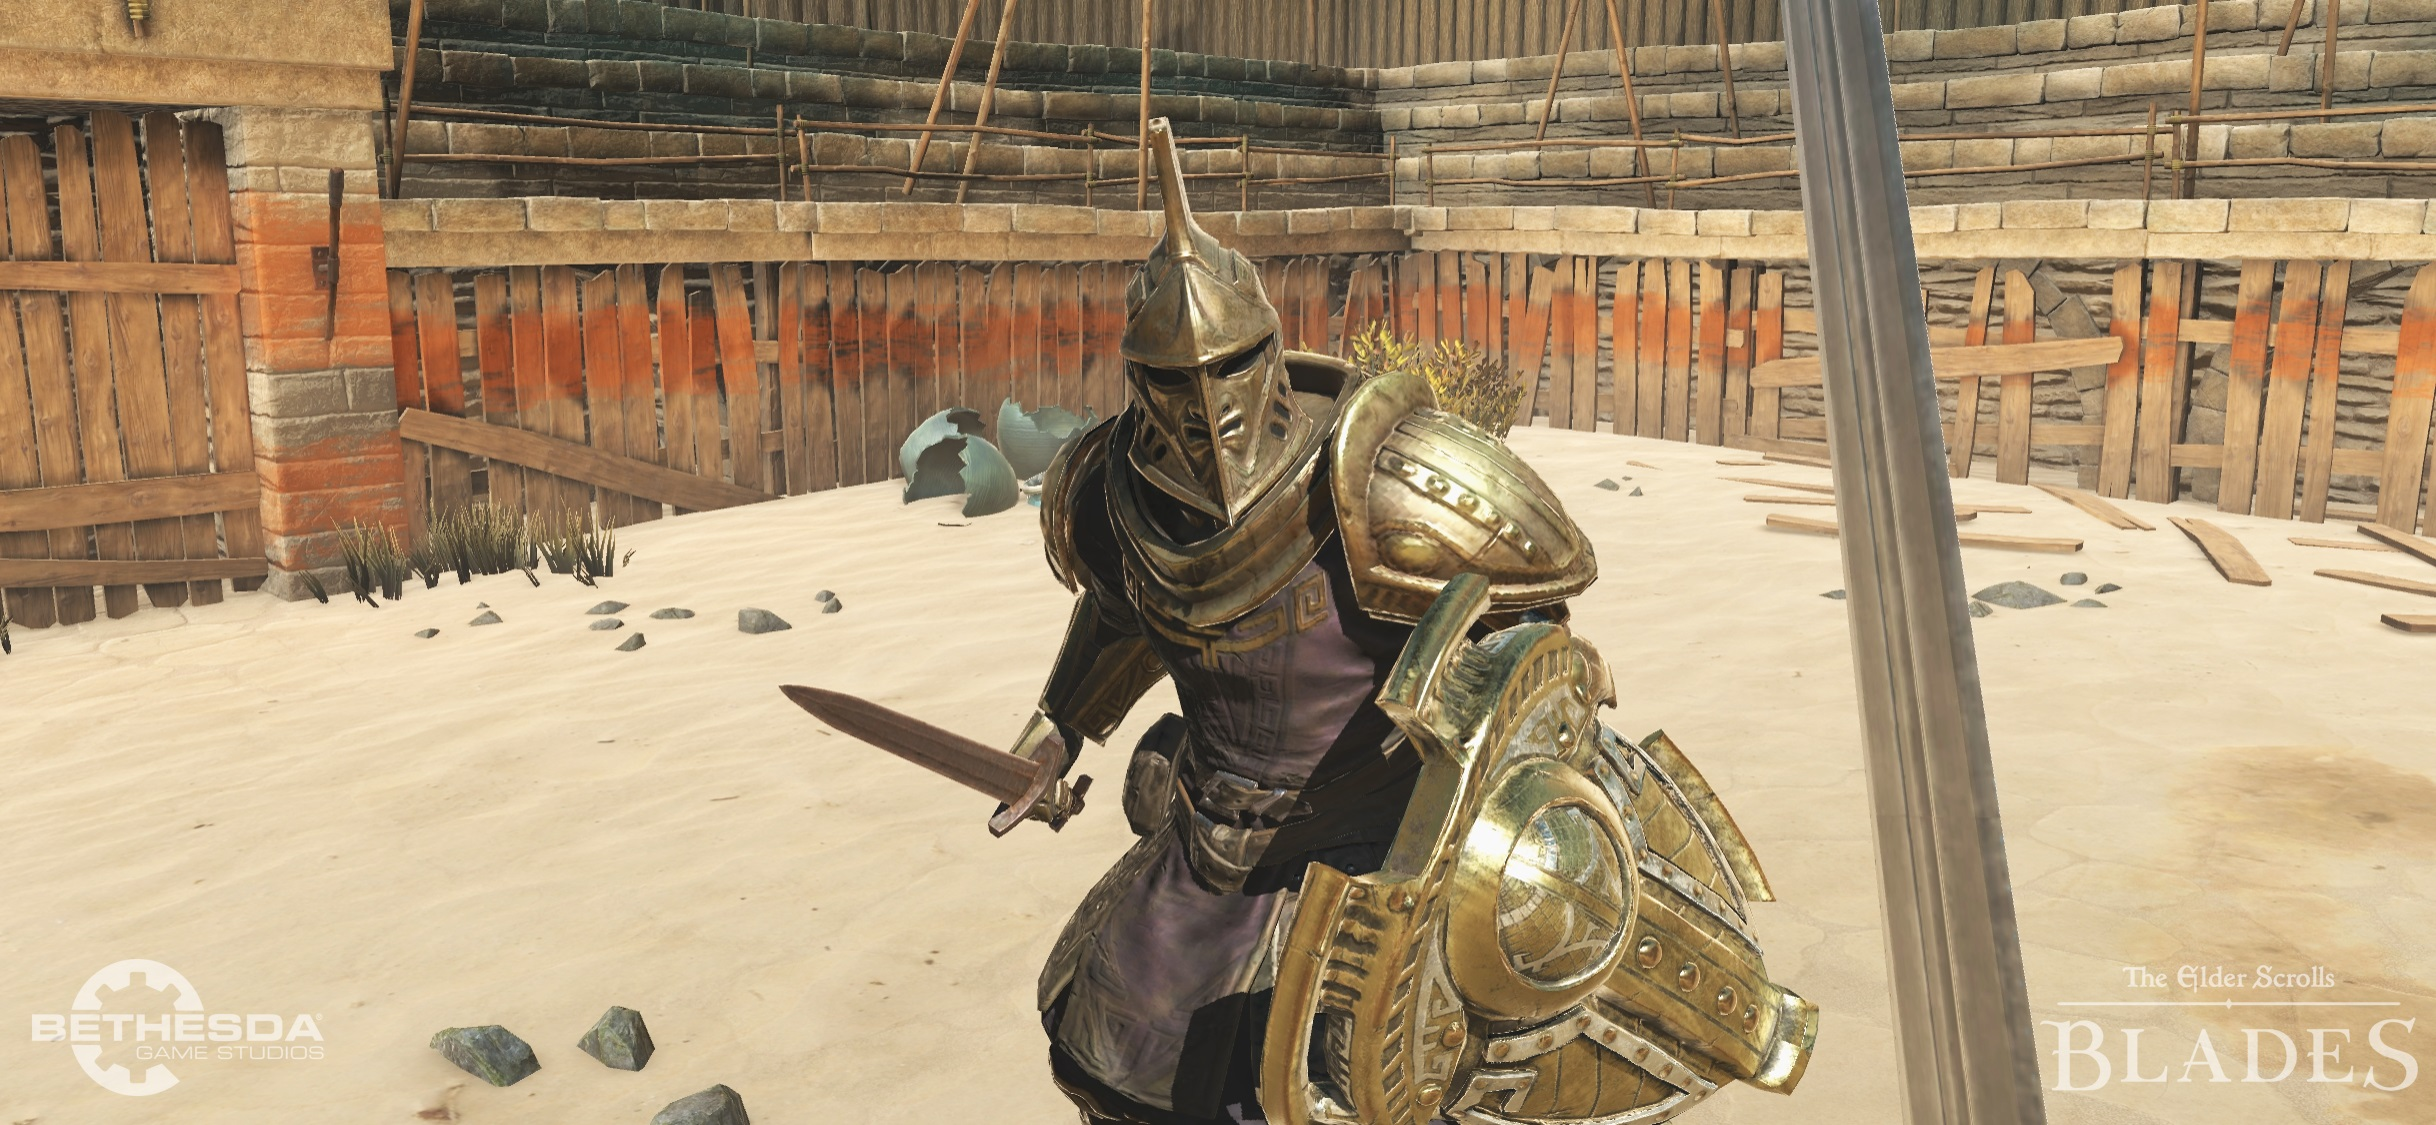 The Elder Scrolls Blades combat